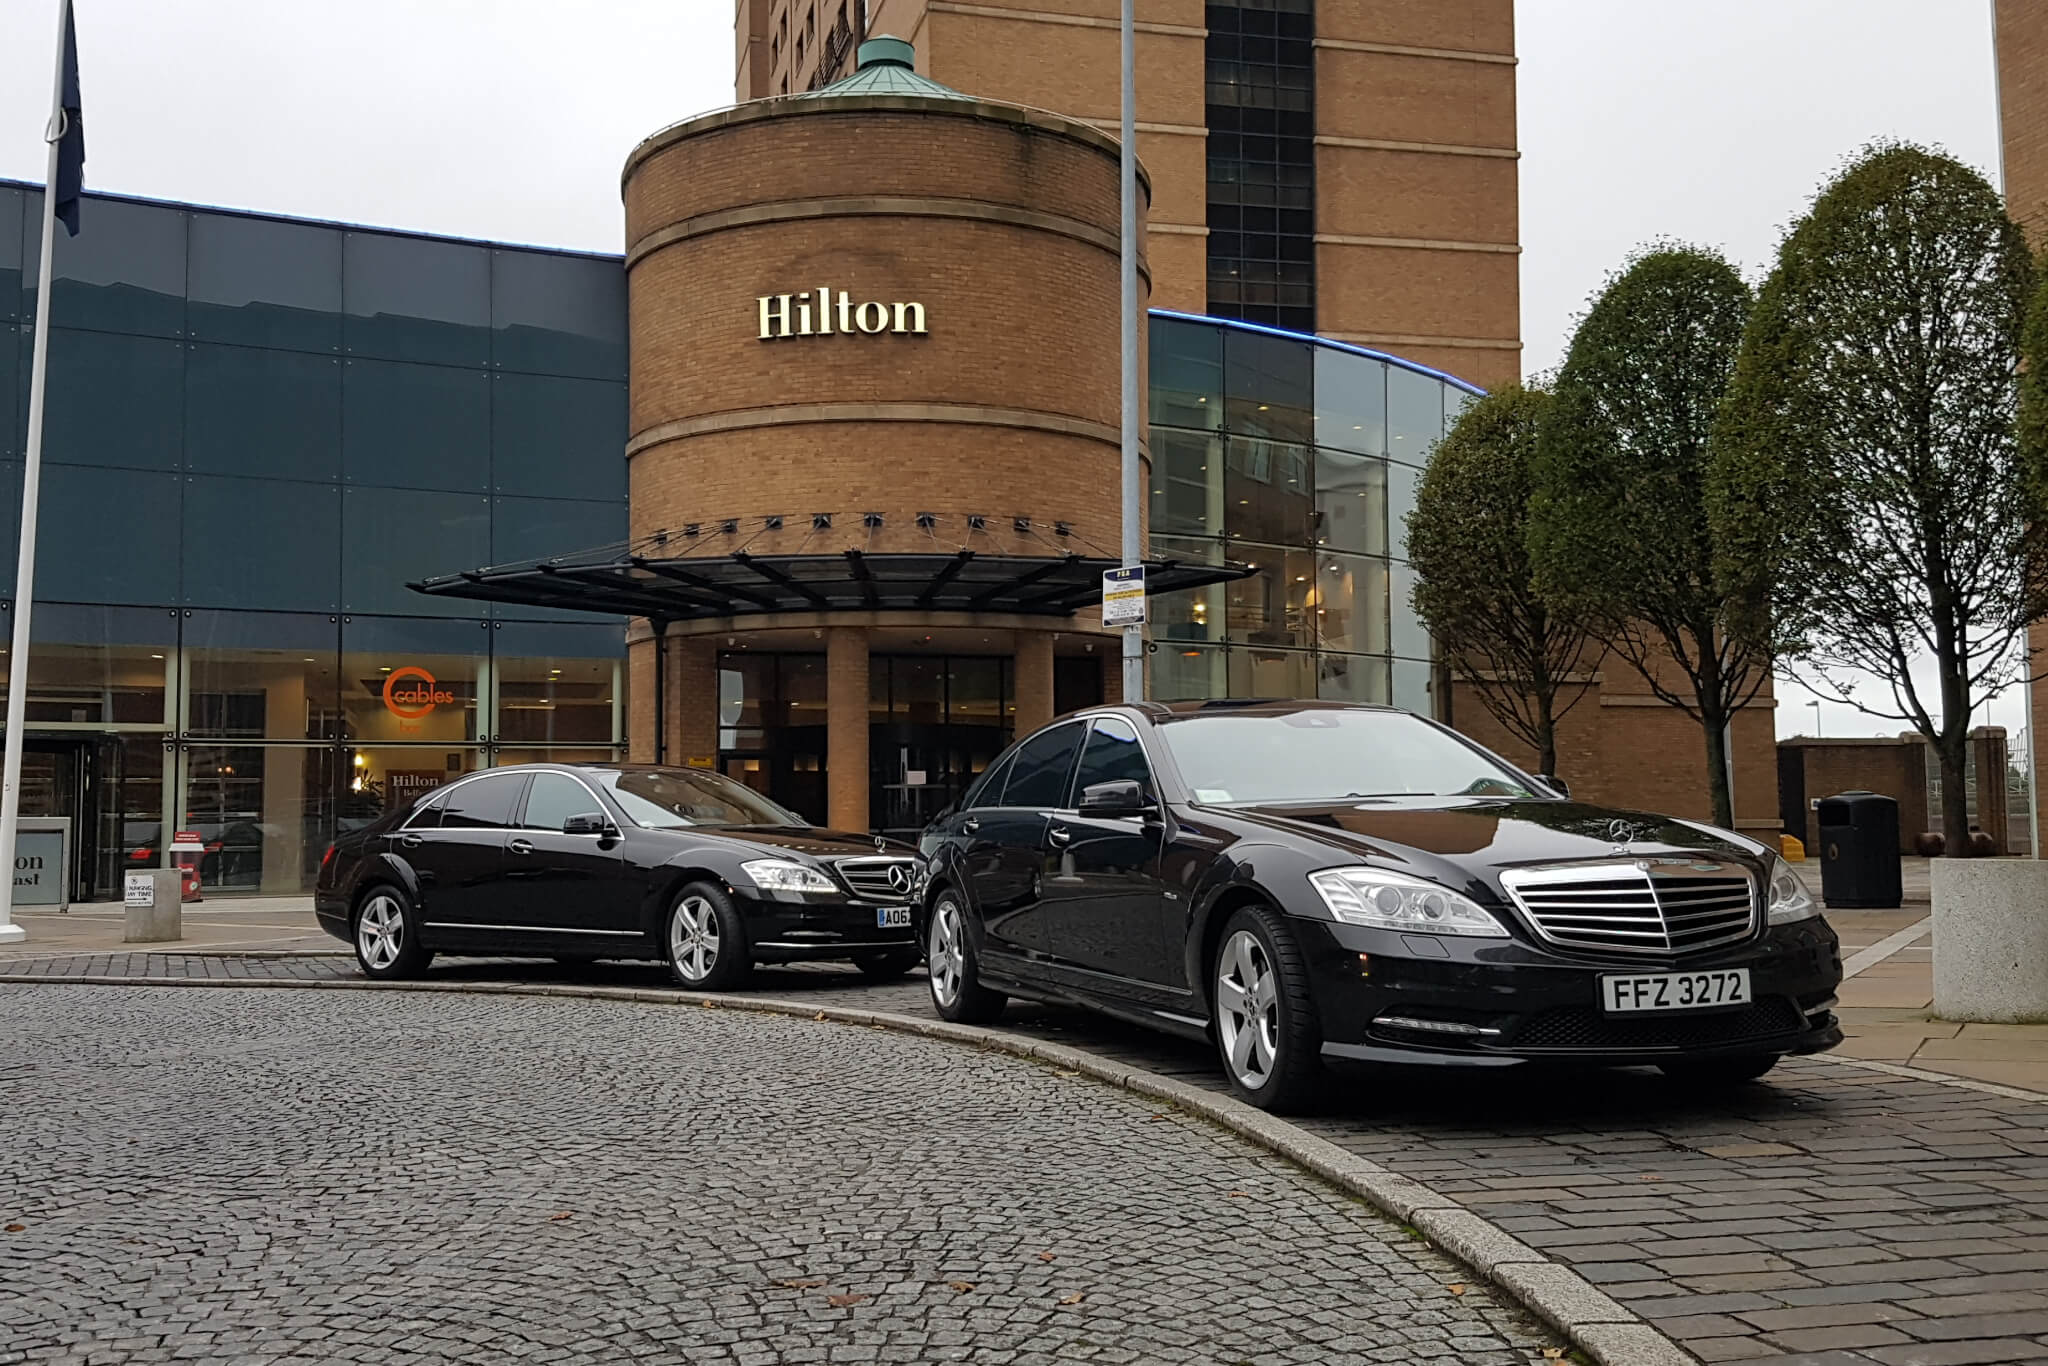 2 Mercedes parked at the Hilton Hotel